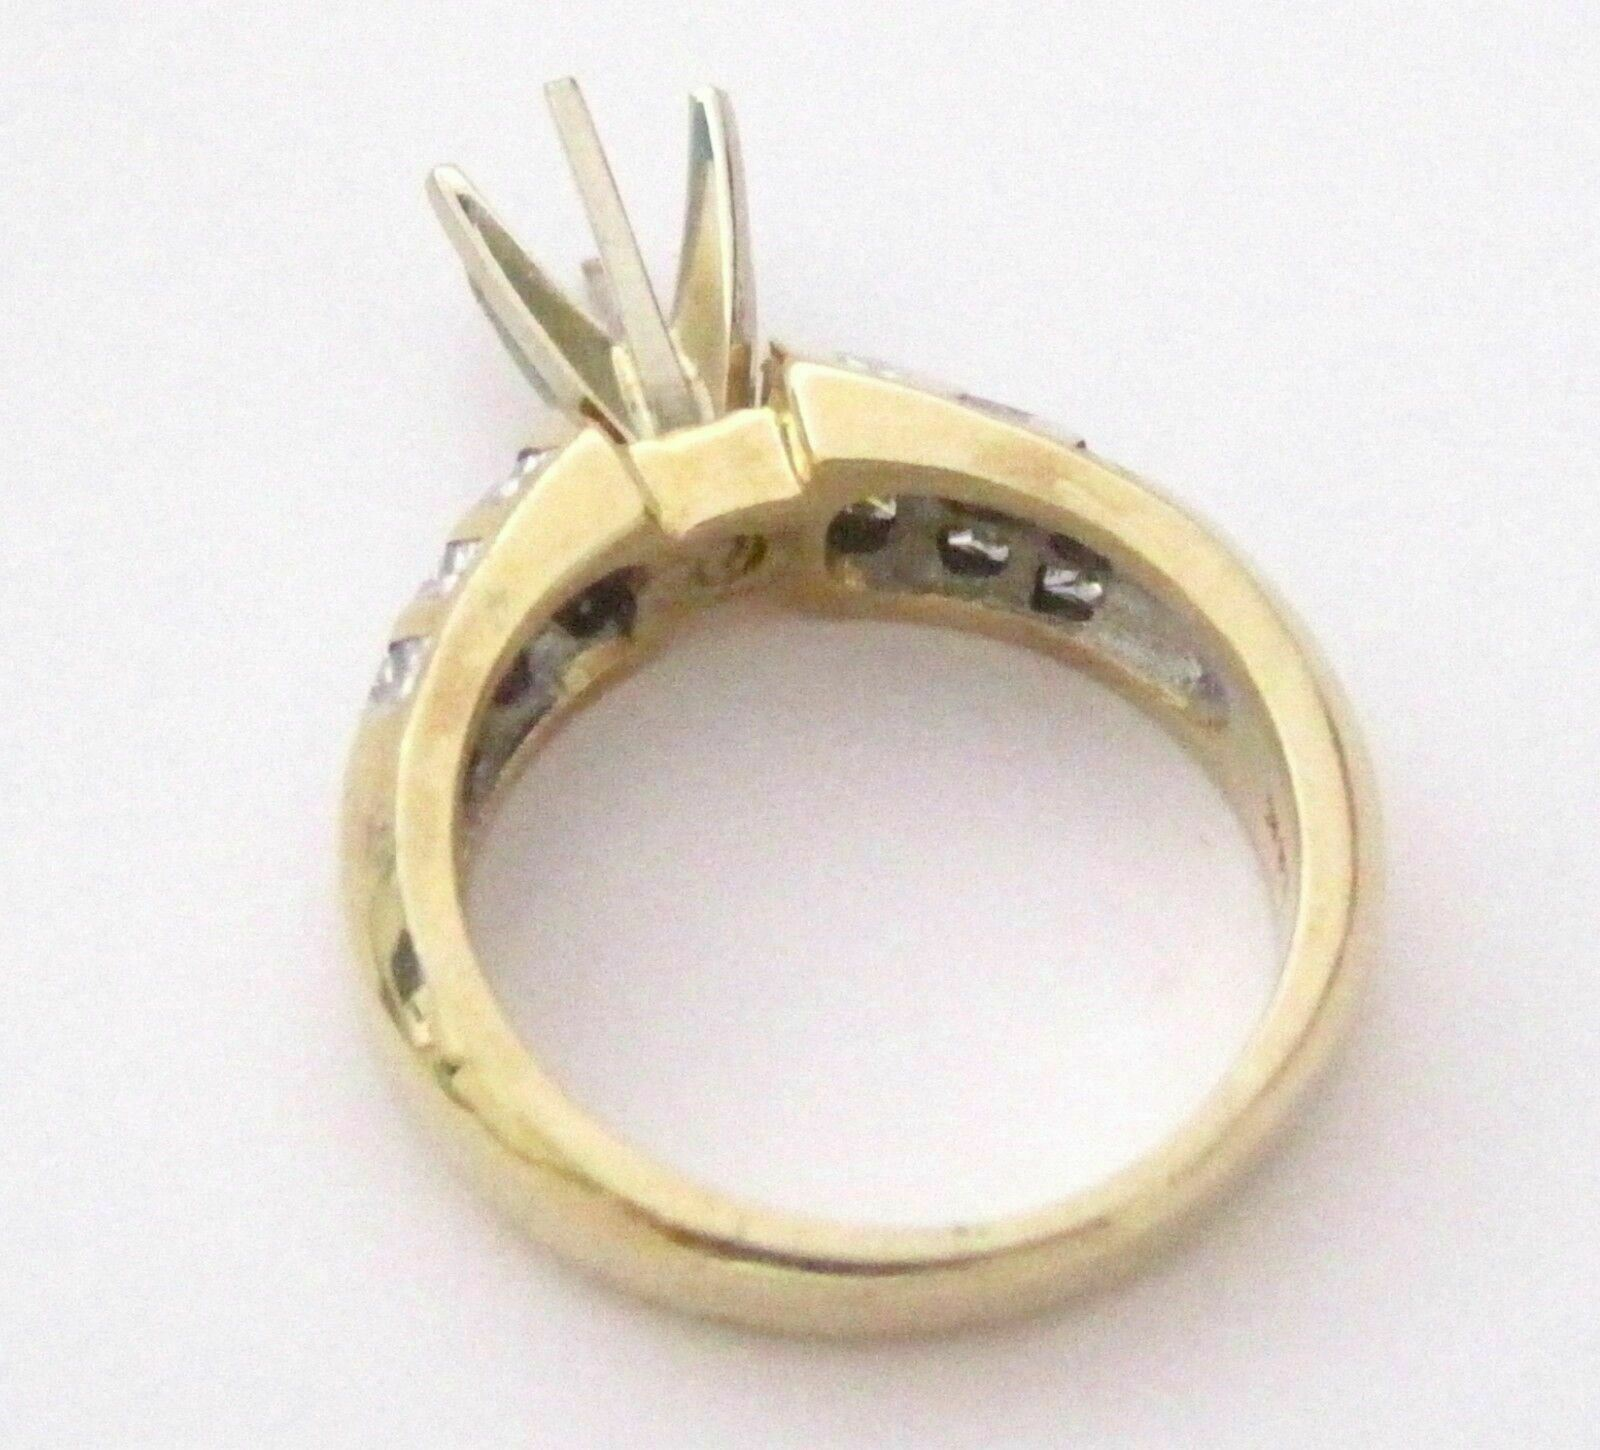 1.0 TCW 6 Prongs Semi-Mounting for Round Cut Diamond Bridal Ring 14kt Y/G